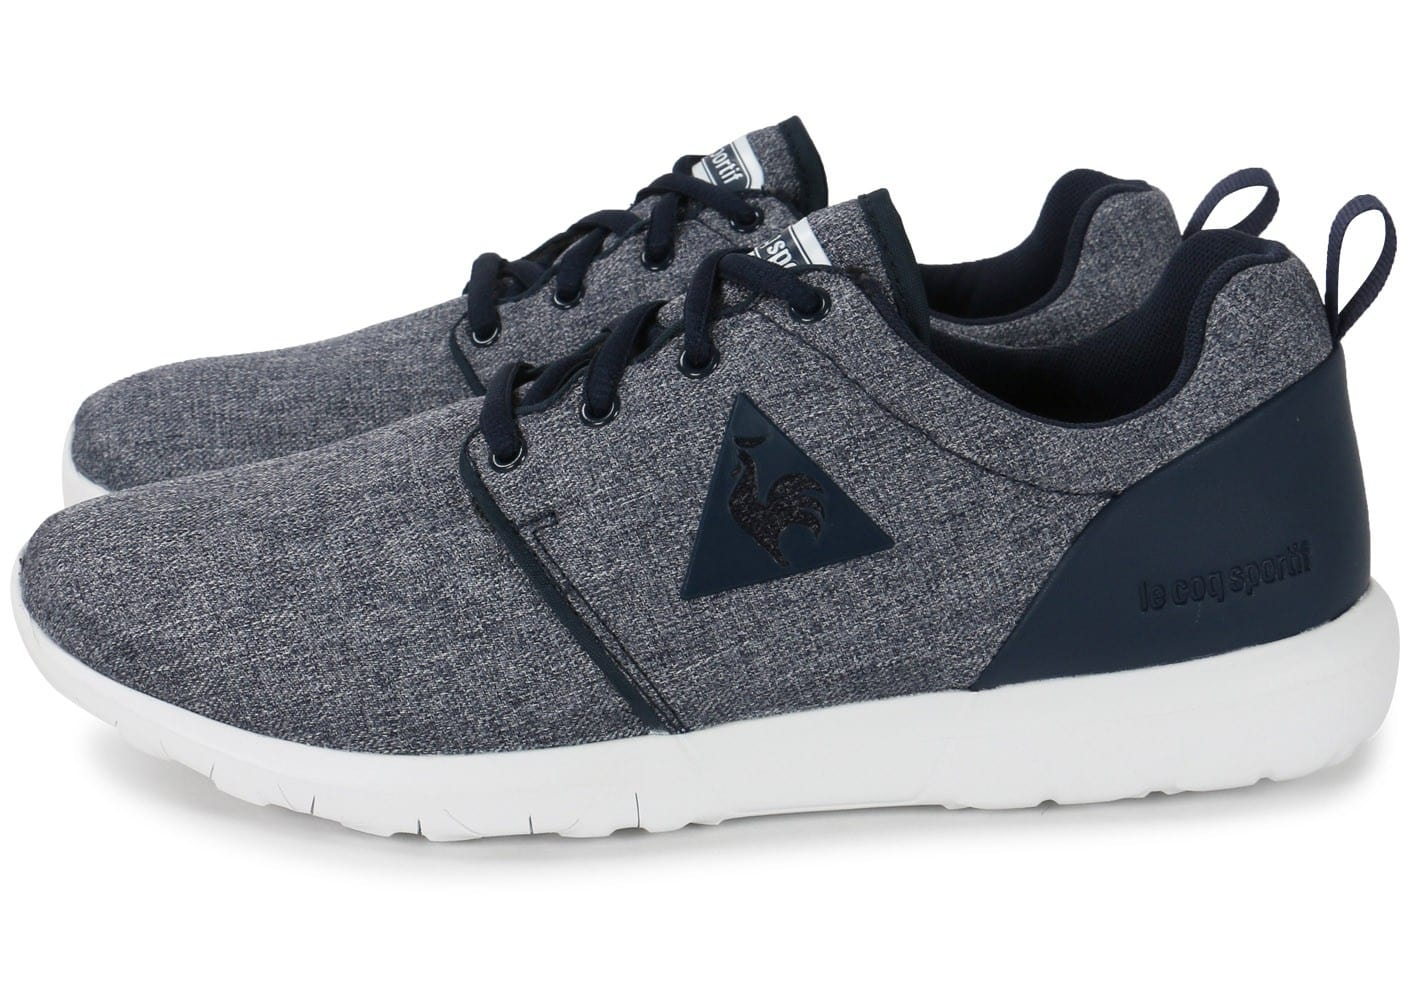 le coq sportif dynacomf bleue chaussures homme chausport. Black Bedroom Furniture Sets. Home Design Ideas